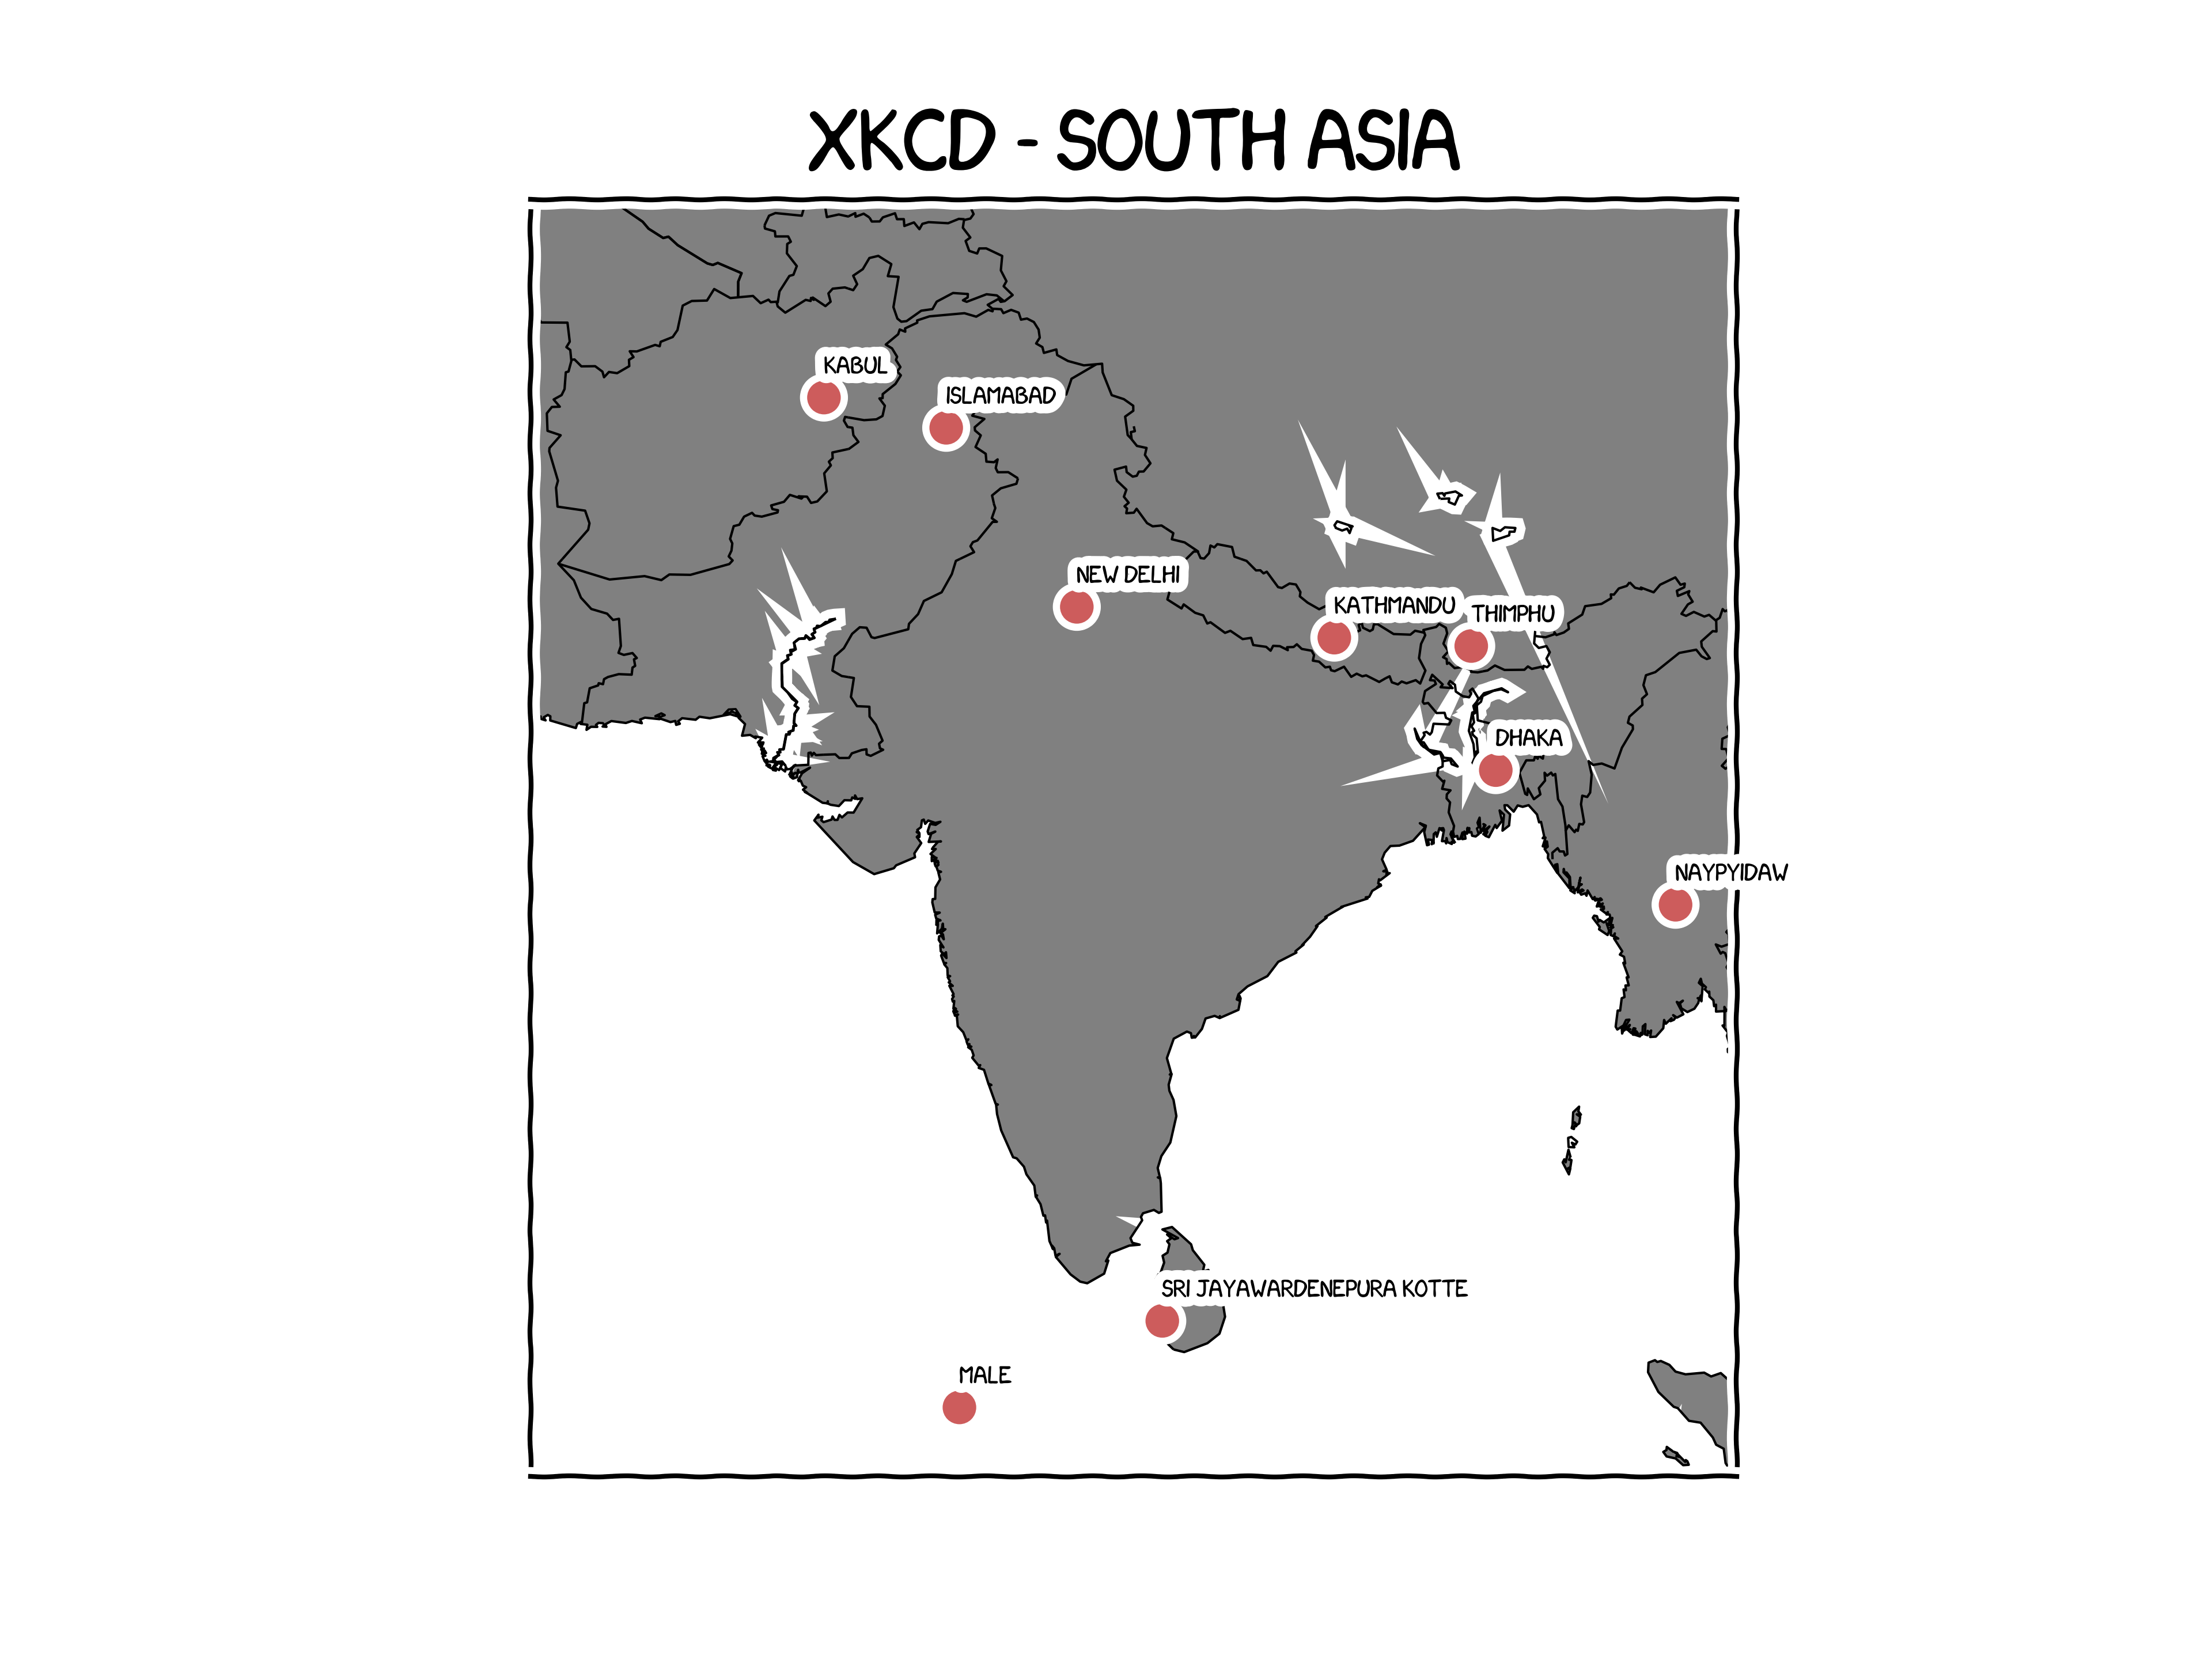 xkcd South Asia